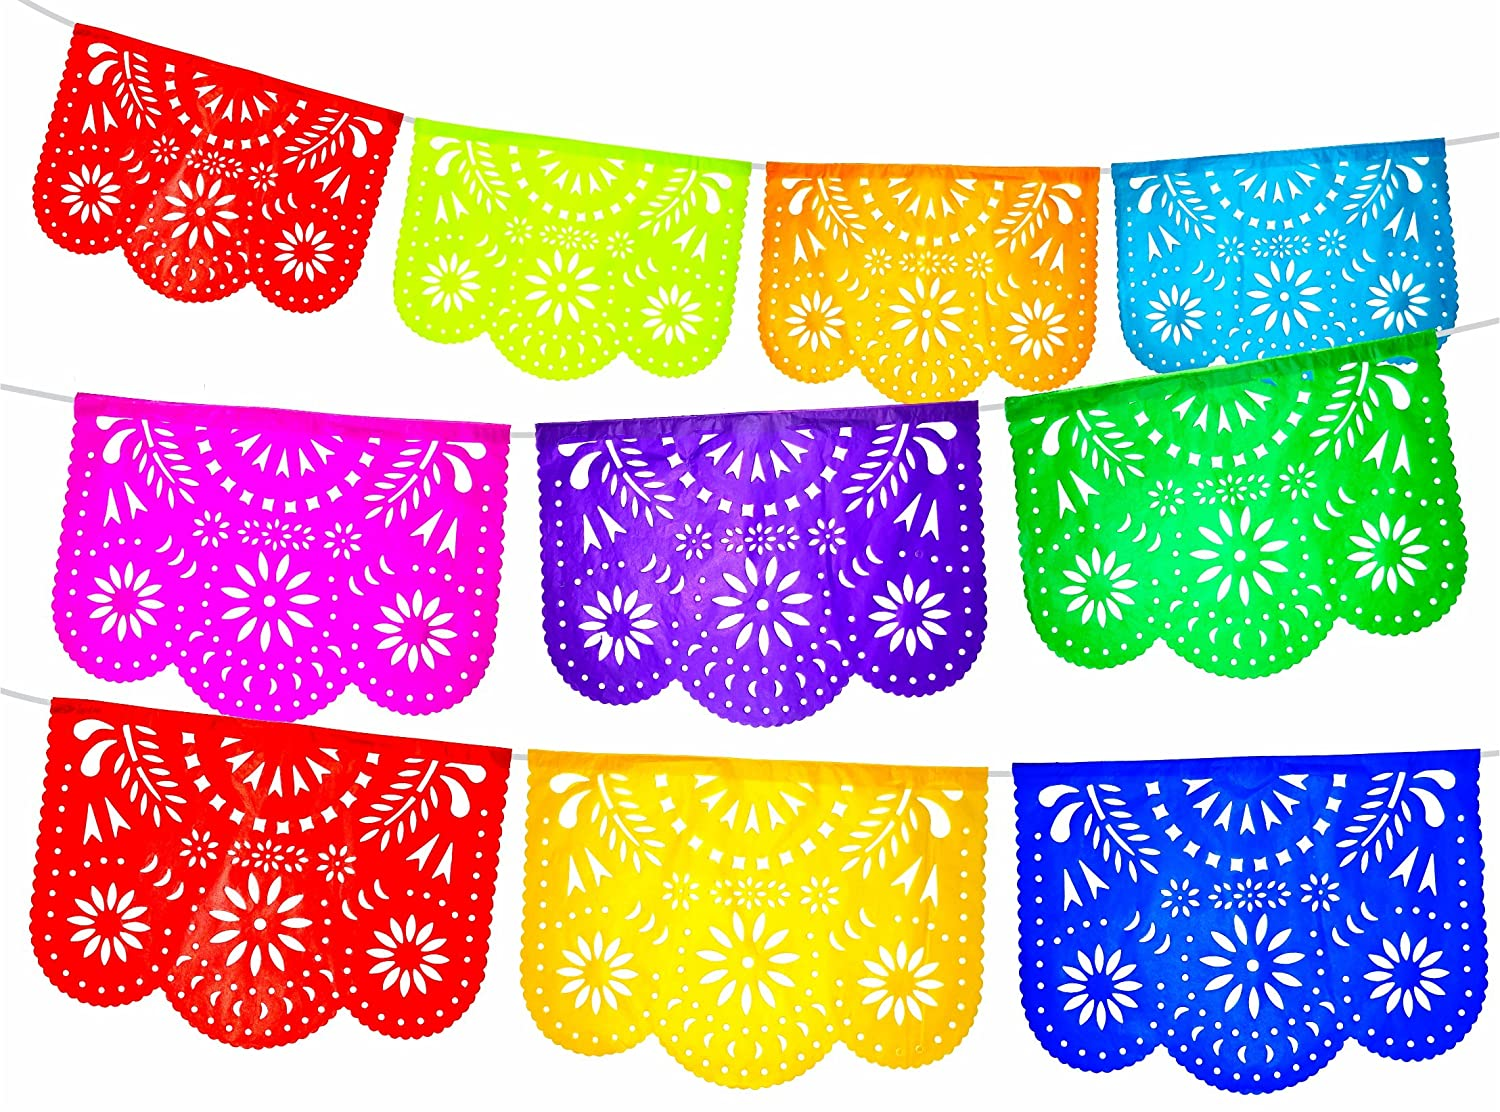 Fiesta Brands 2 Pack. Mexican Papel Picado Banner.Colores de Primavera.Vibrant Colors Tissue Paper. Large Size Panels. Multicolored Flowers Design DBM